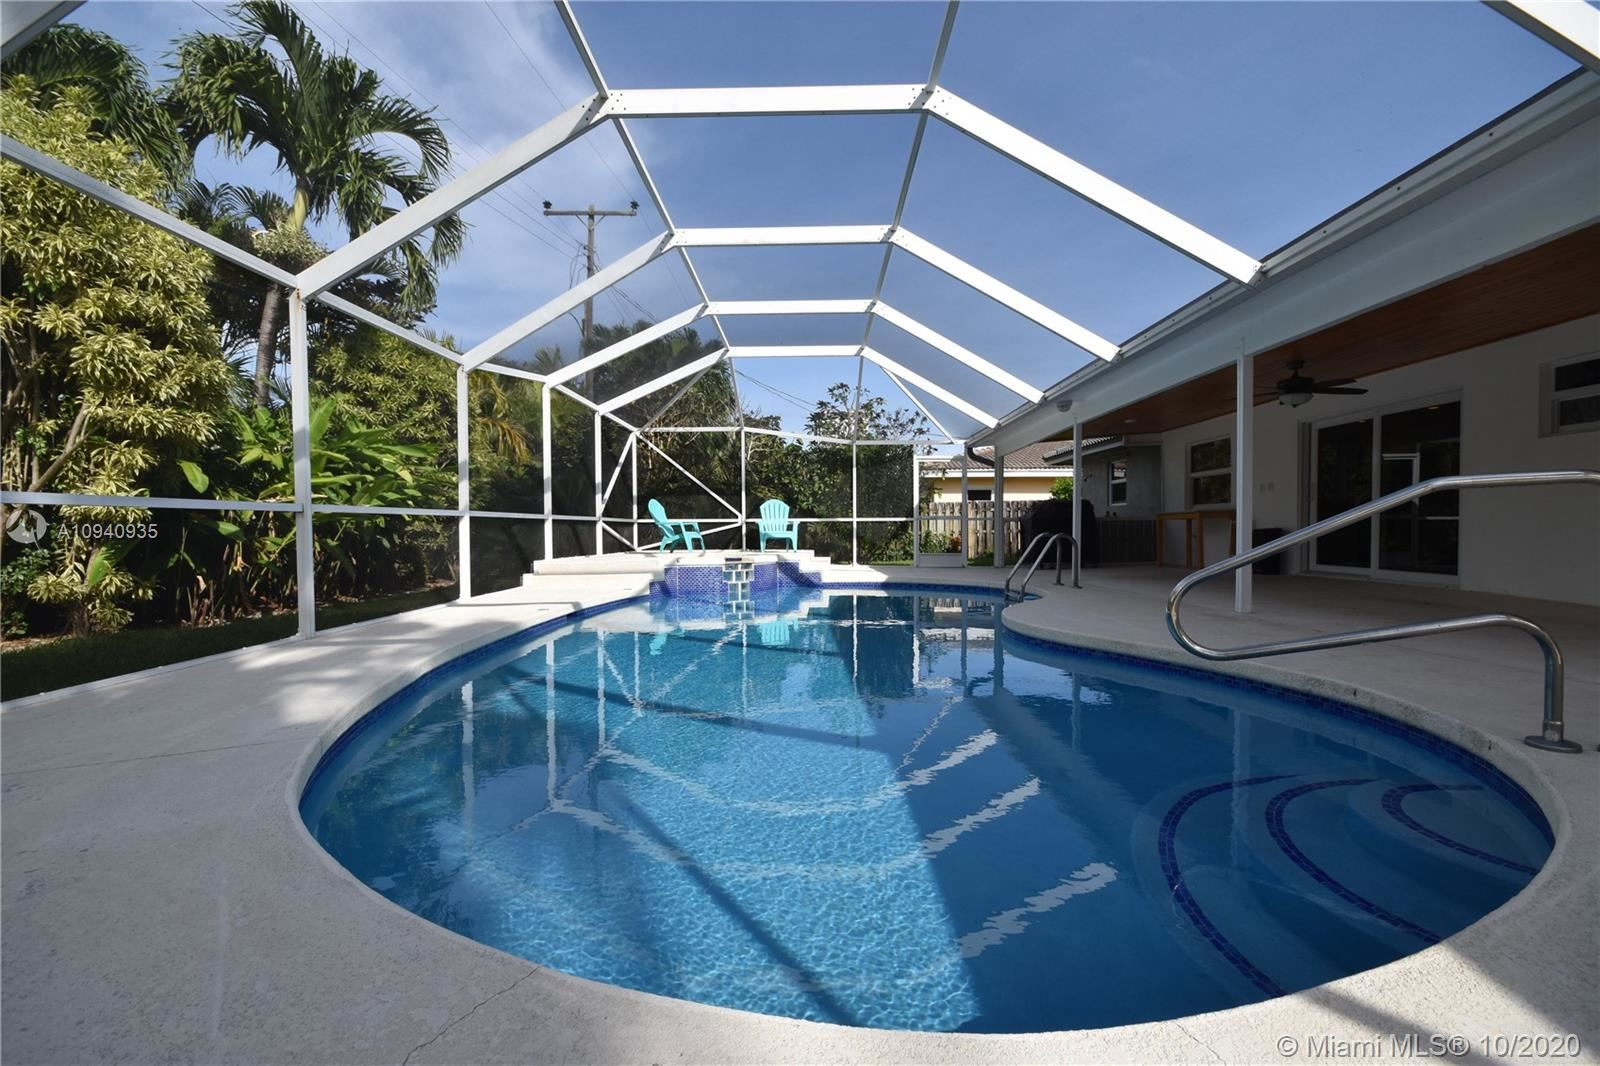 1200 Manor Dr, Riviera Beach, FL 33404 - #: A10940935